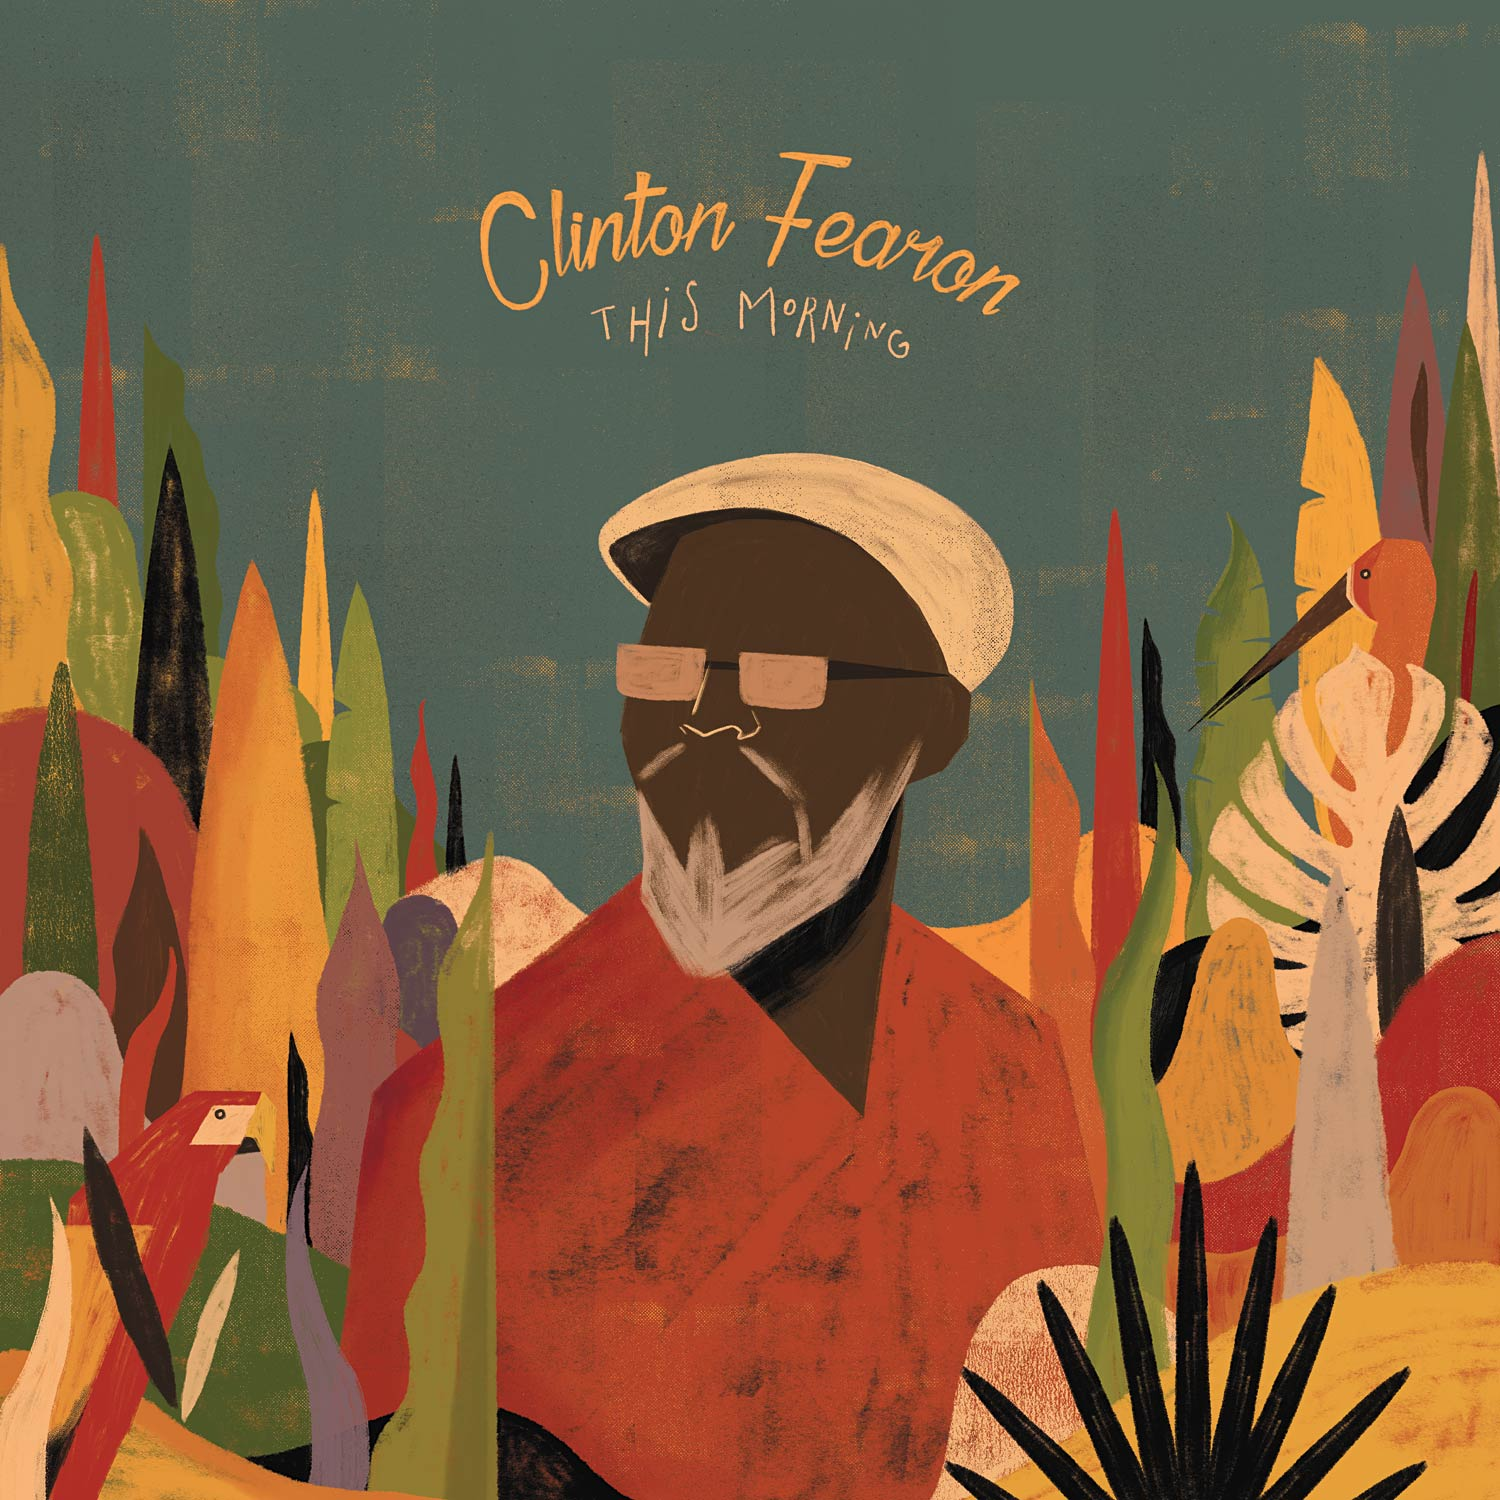 Clinton Fearon - This Morning (2016)